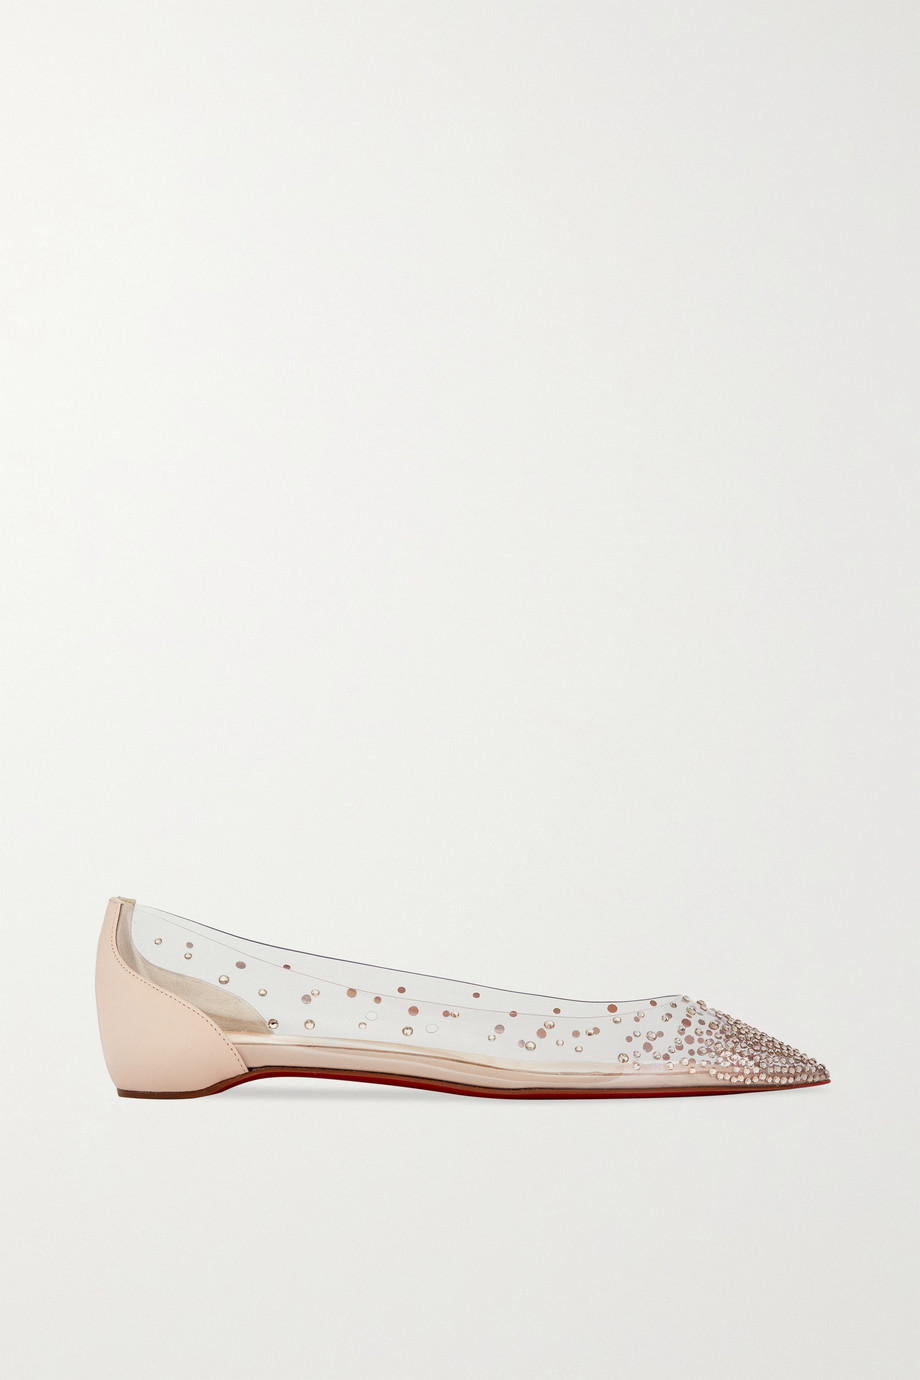 Christian Louboutin Degrastrass embellished PVC and leather point-toe flats